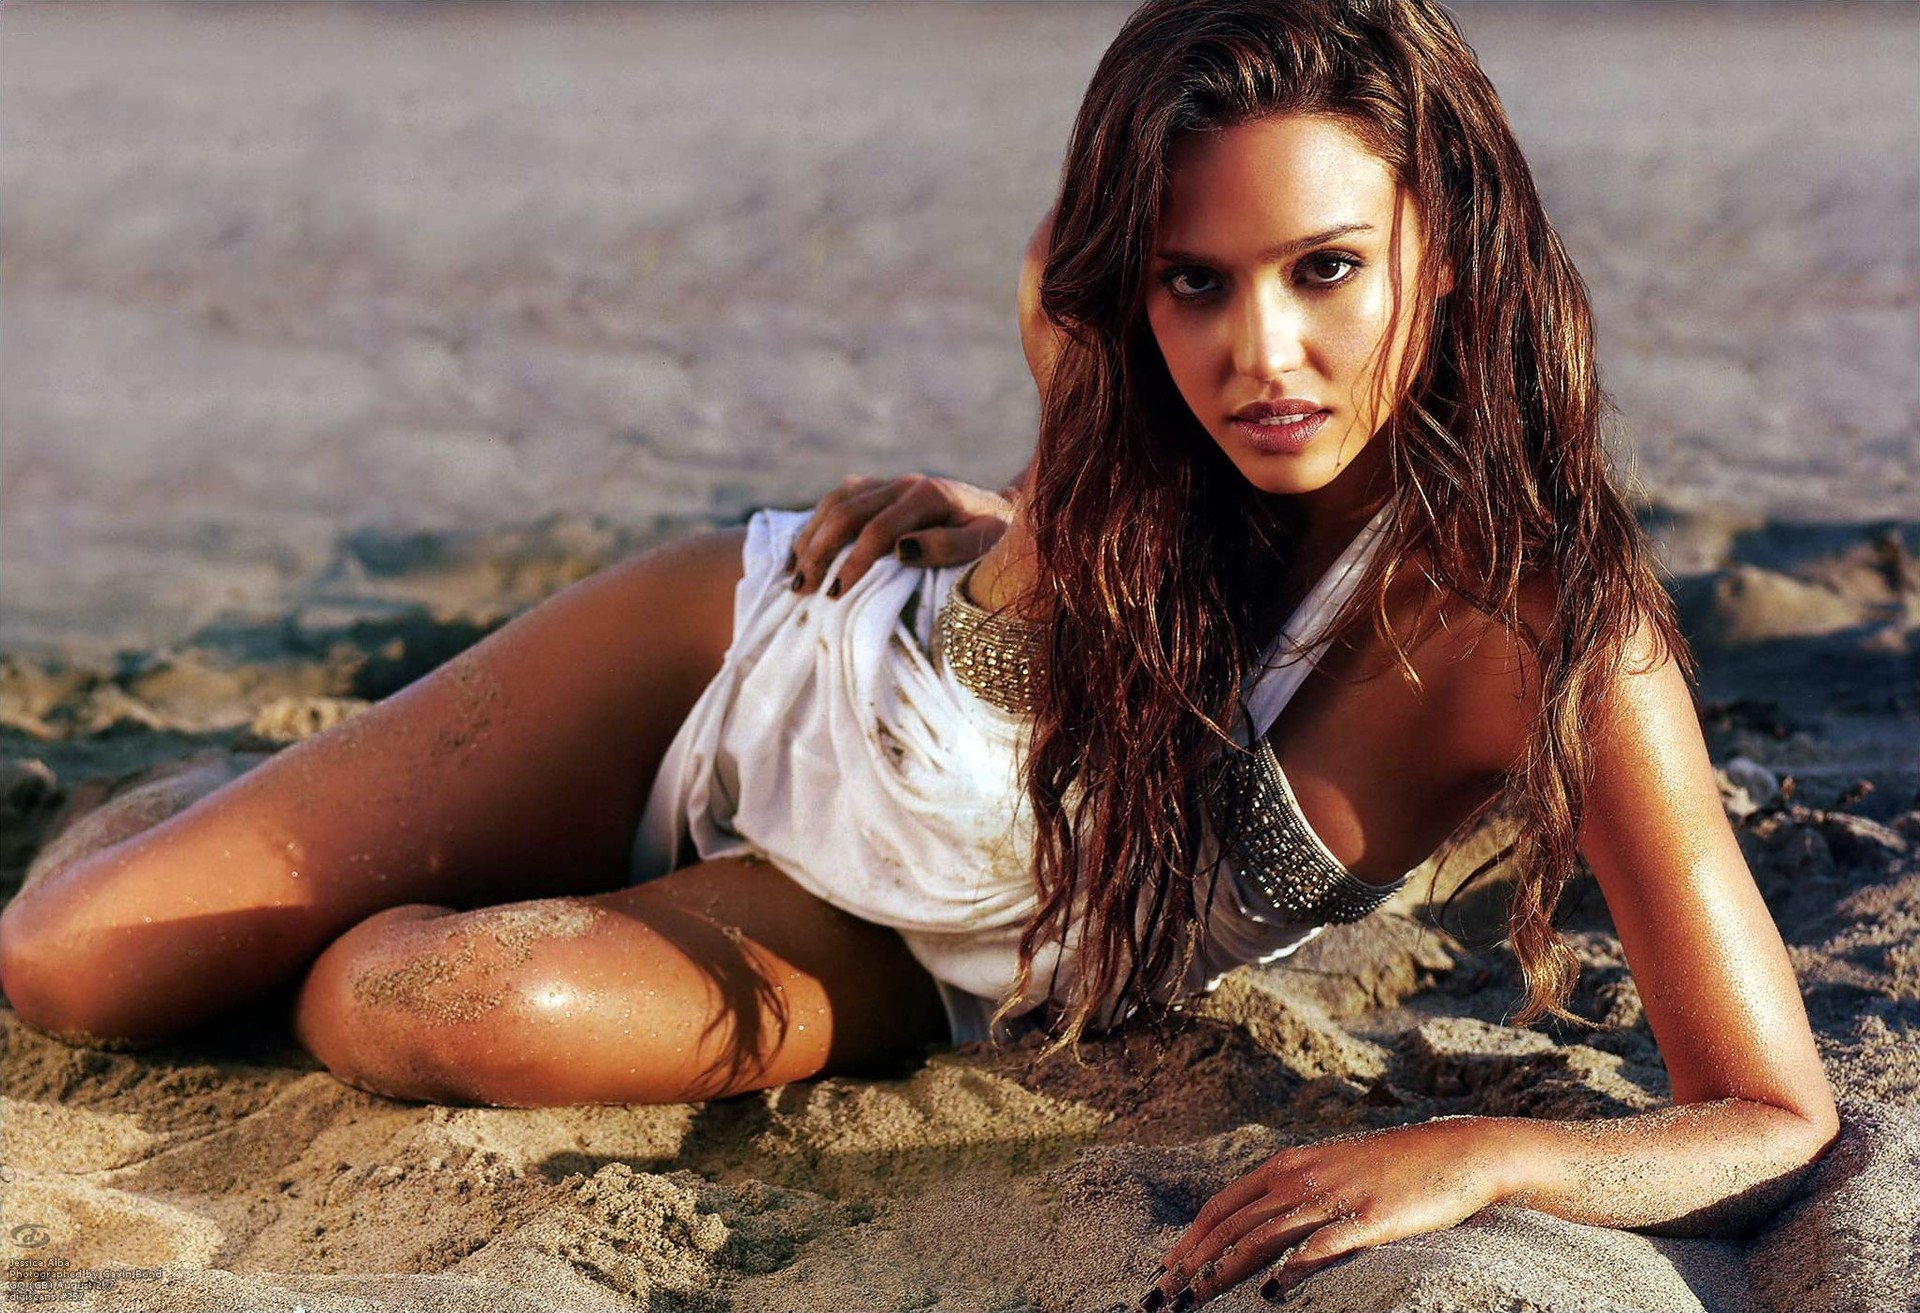 Jessica alba photo shoot 2010 cameltoe